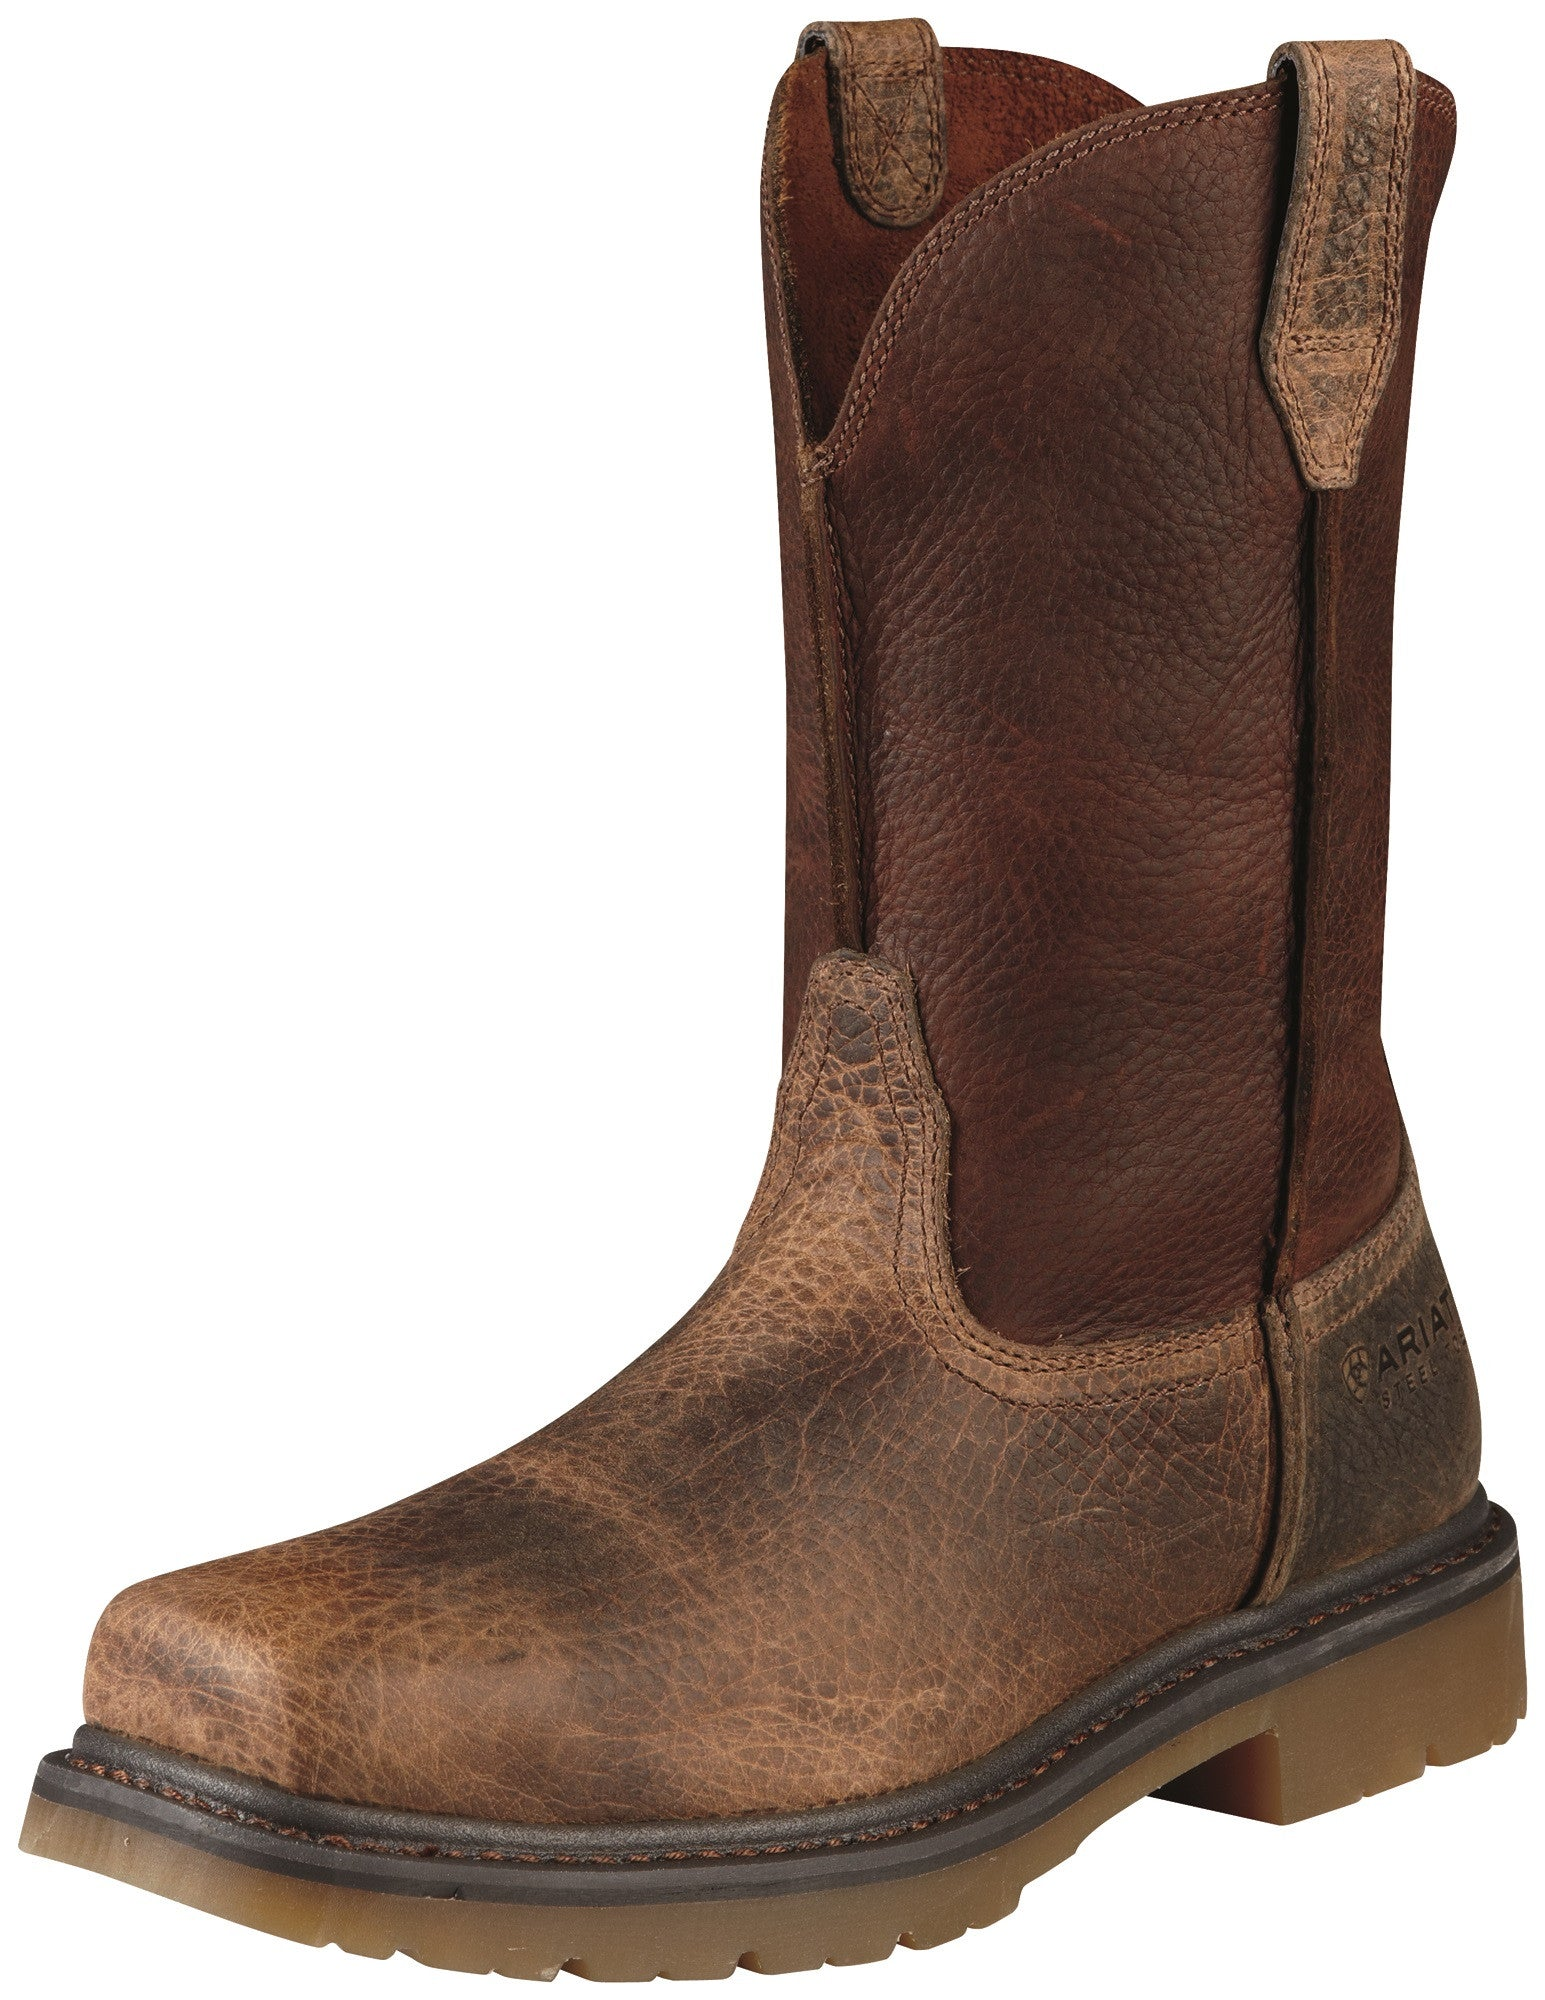 Men's Ariat Rambler Work Steel Toe Work Boot #10008642